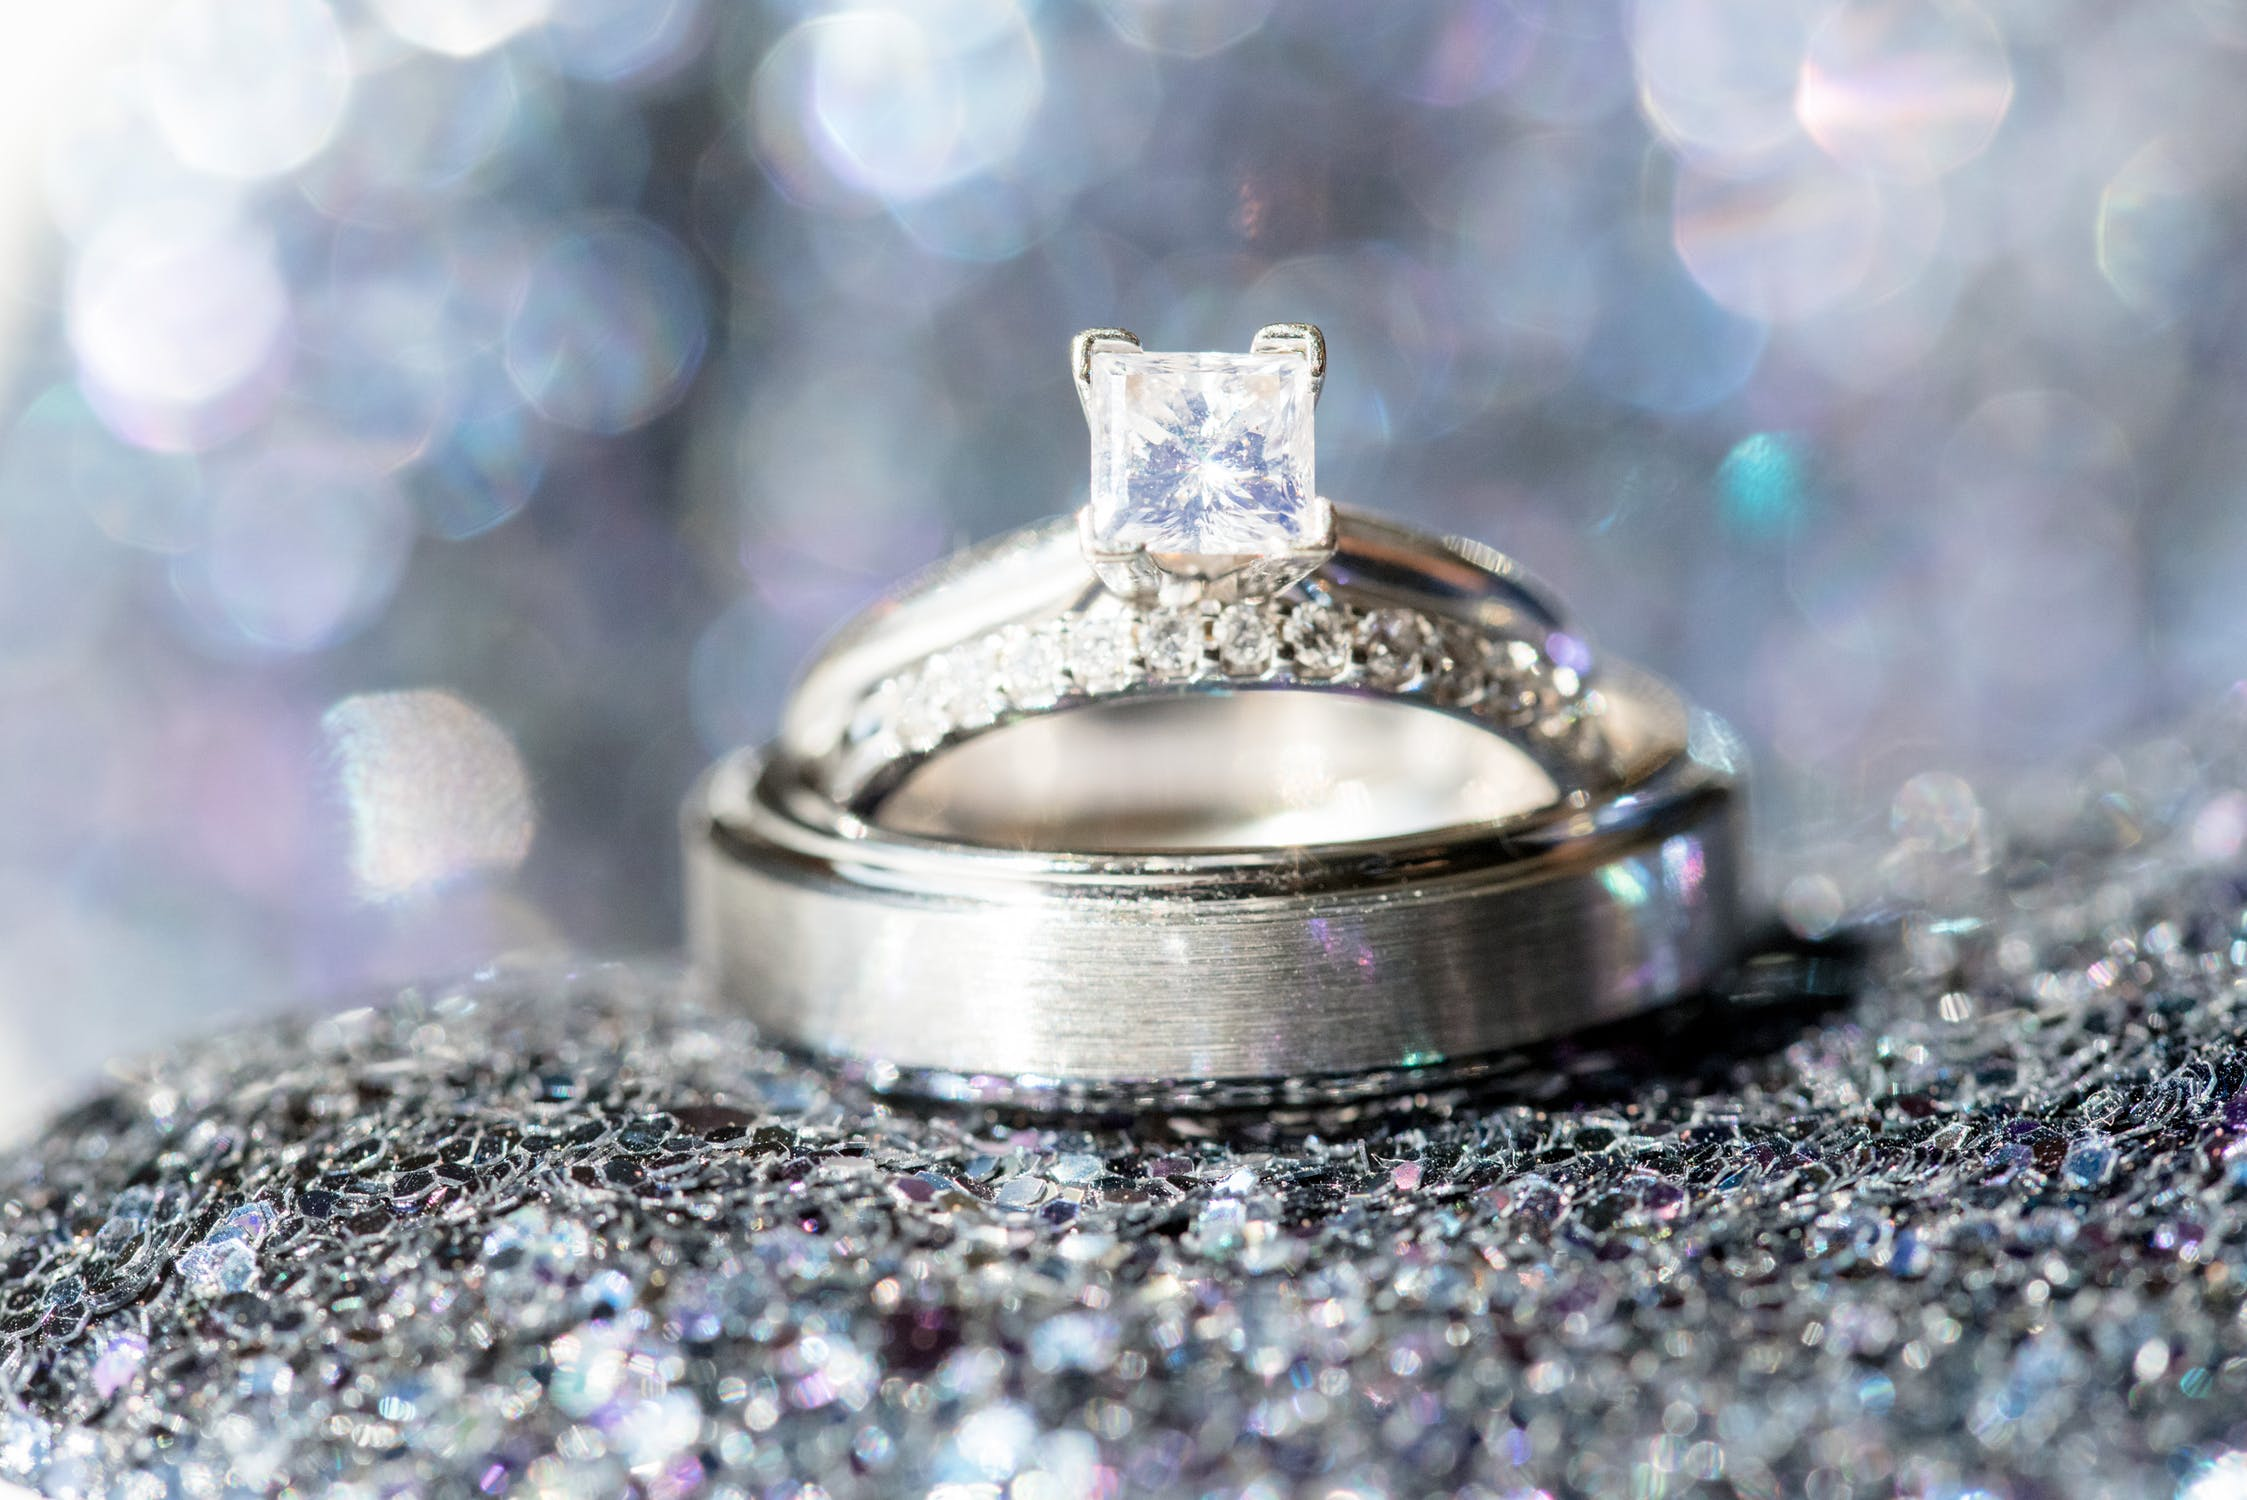 Christmas marriage proposal ring